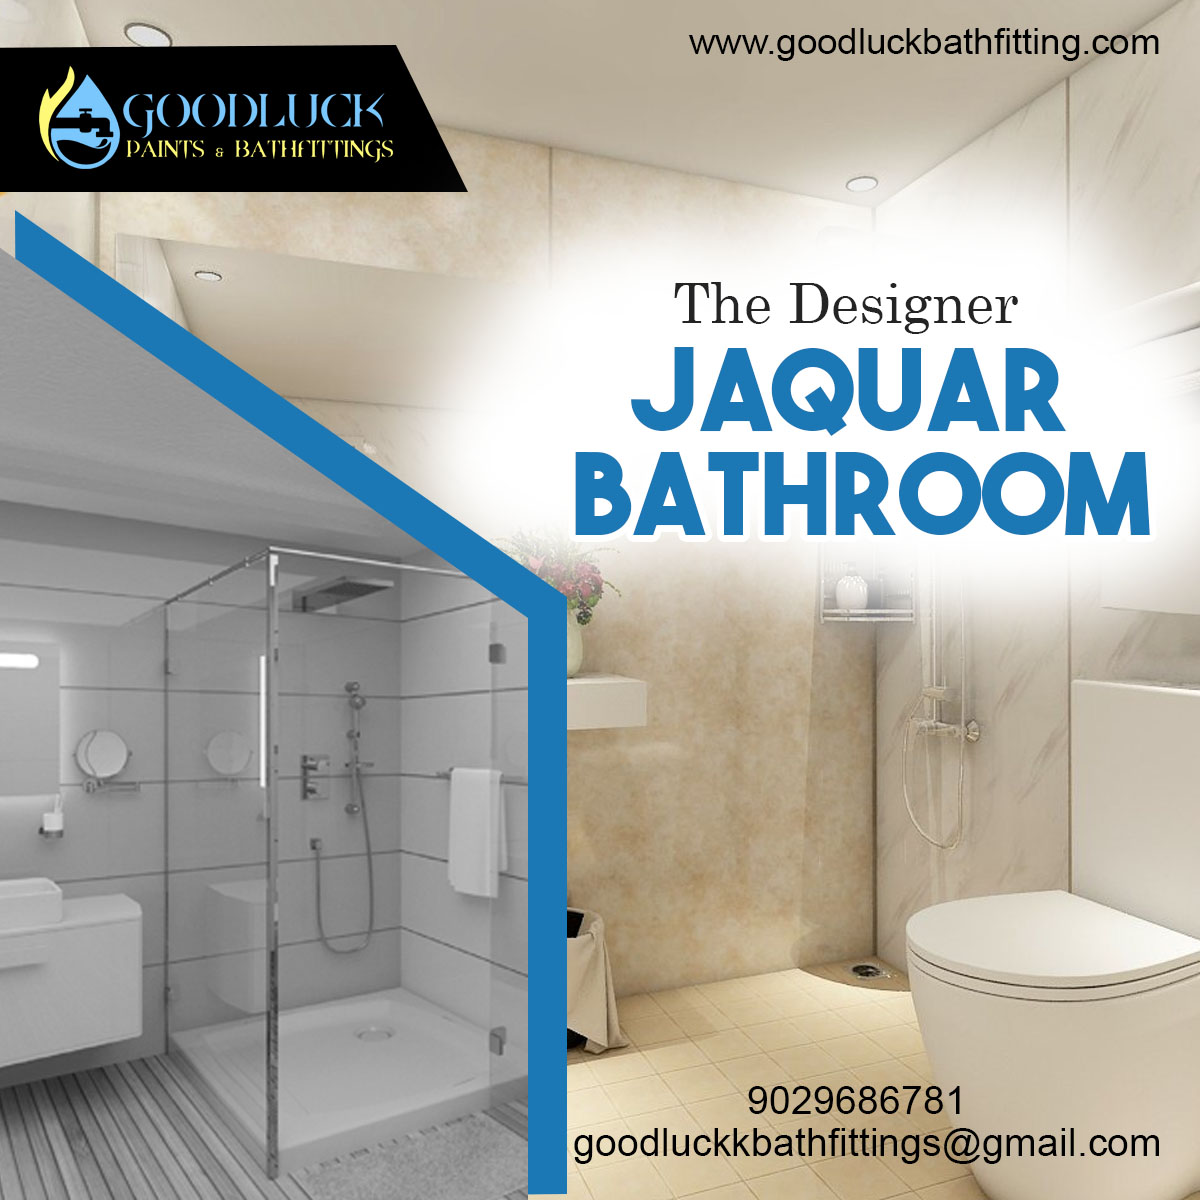 Good Luck Paints Bath Fitting Ar Twitter Enjoy Your Morning With The Best Luxury Bathrooms Designed With Jaquar Fittings Jaquar Fittings Are Trusted For Awesome Designs And Varieties In Bathroom Accessories